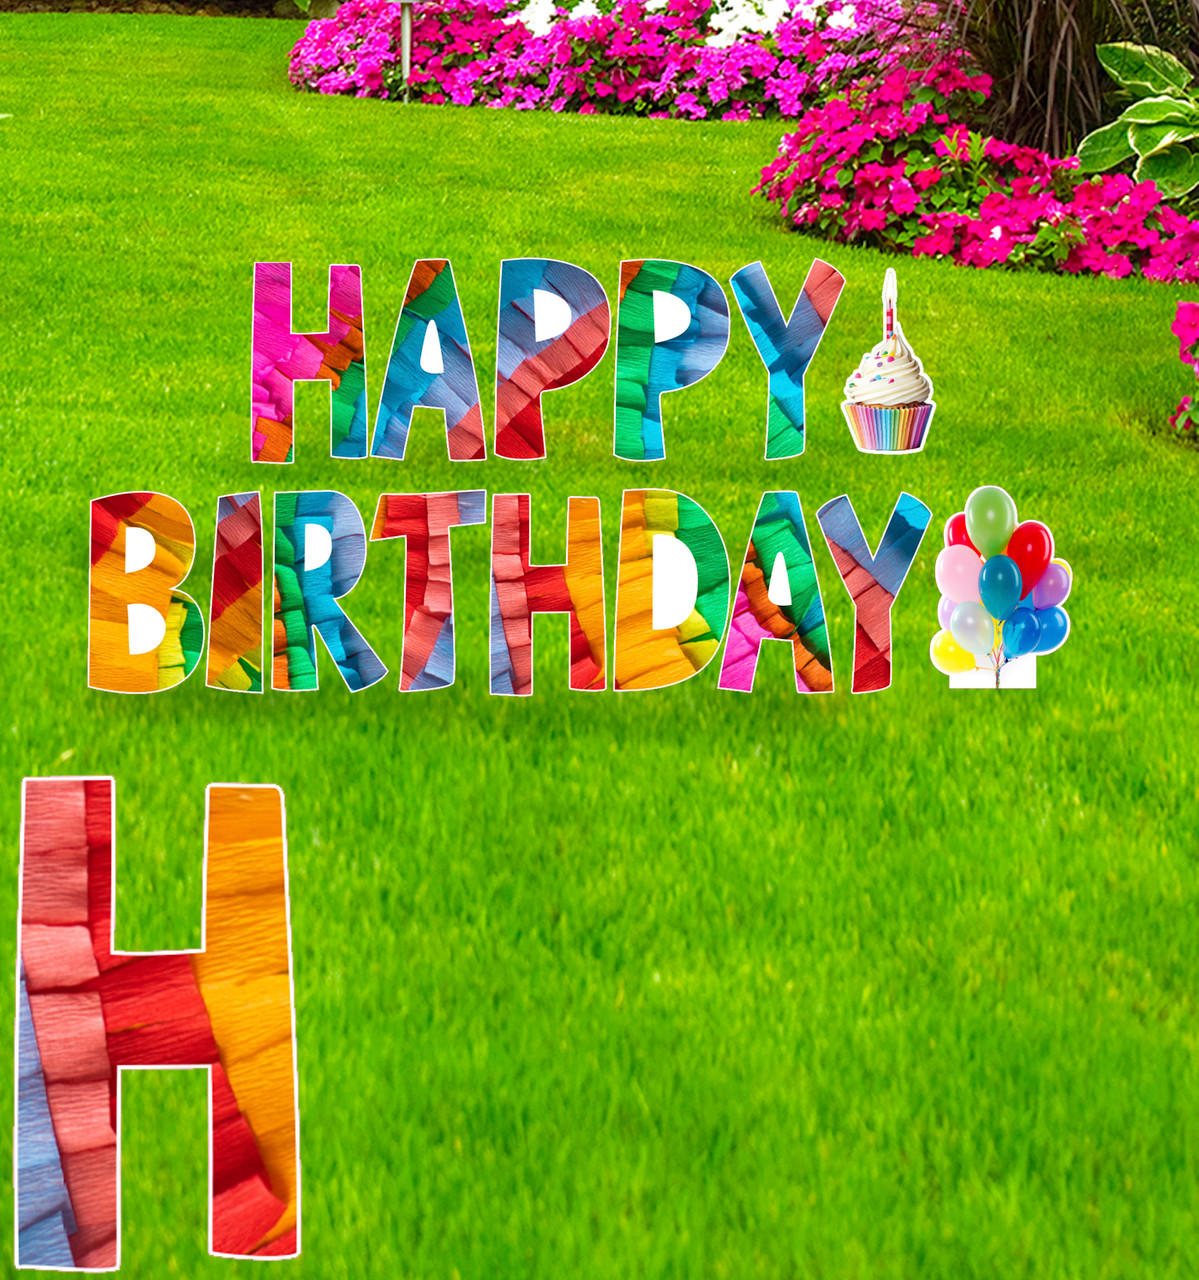 Coroplast Crate Paper Happy Birthday yard signs with background.